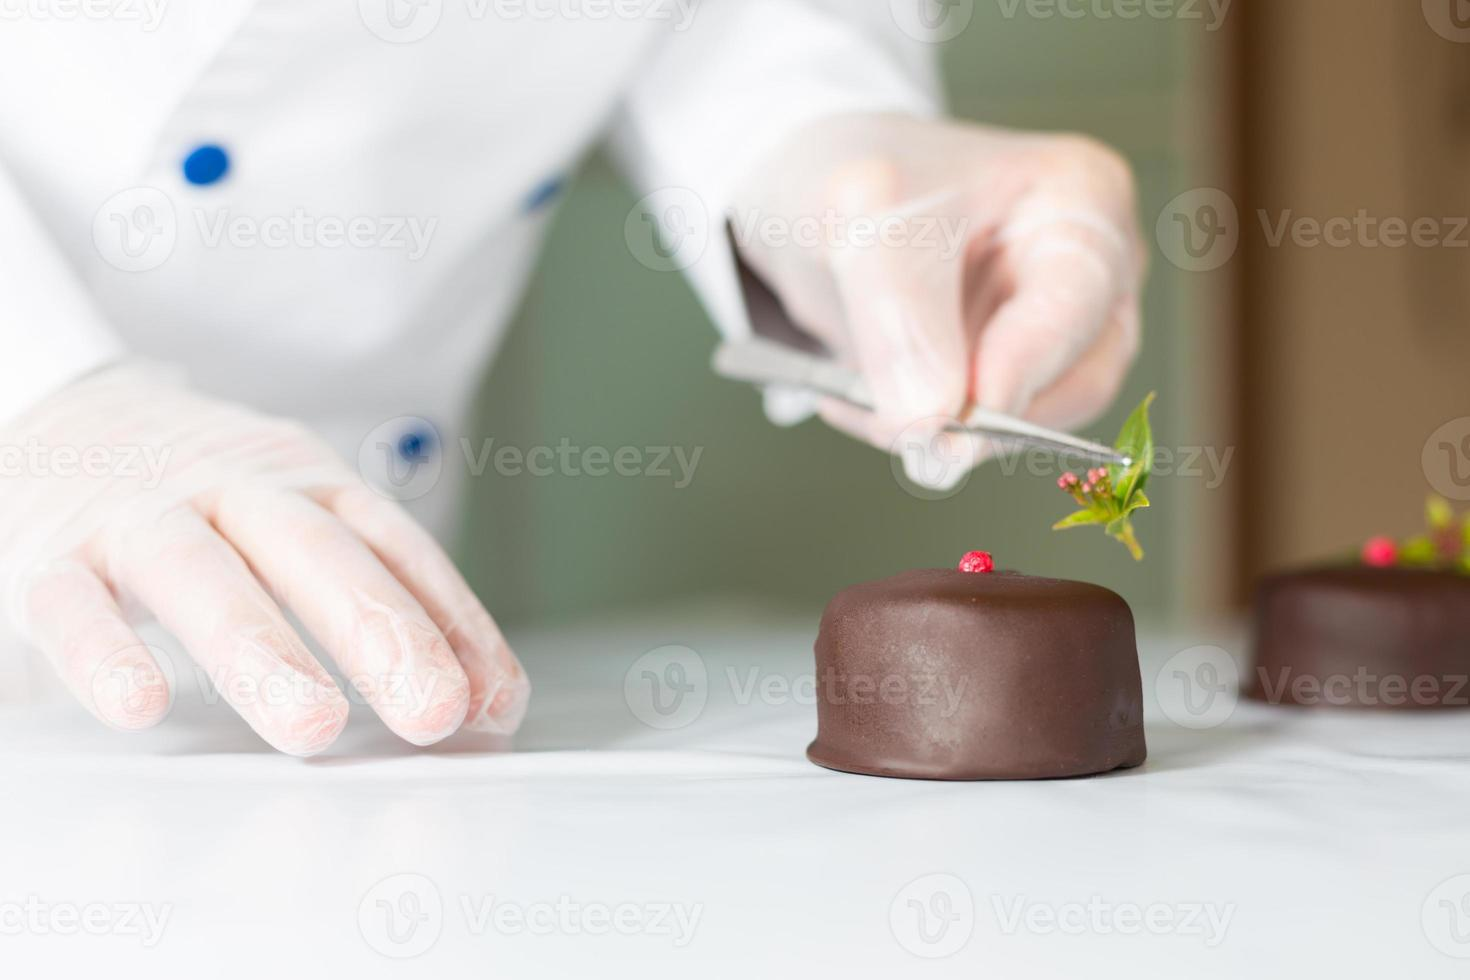 Pastry with a cake photo